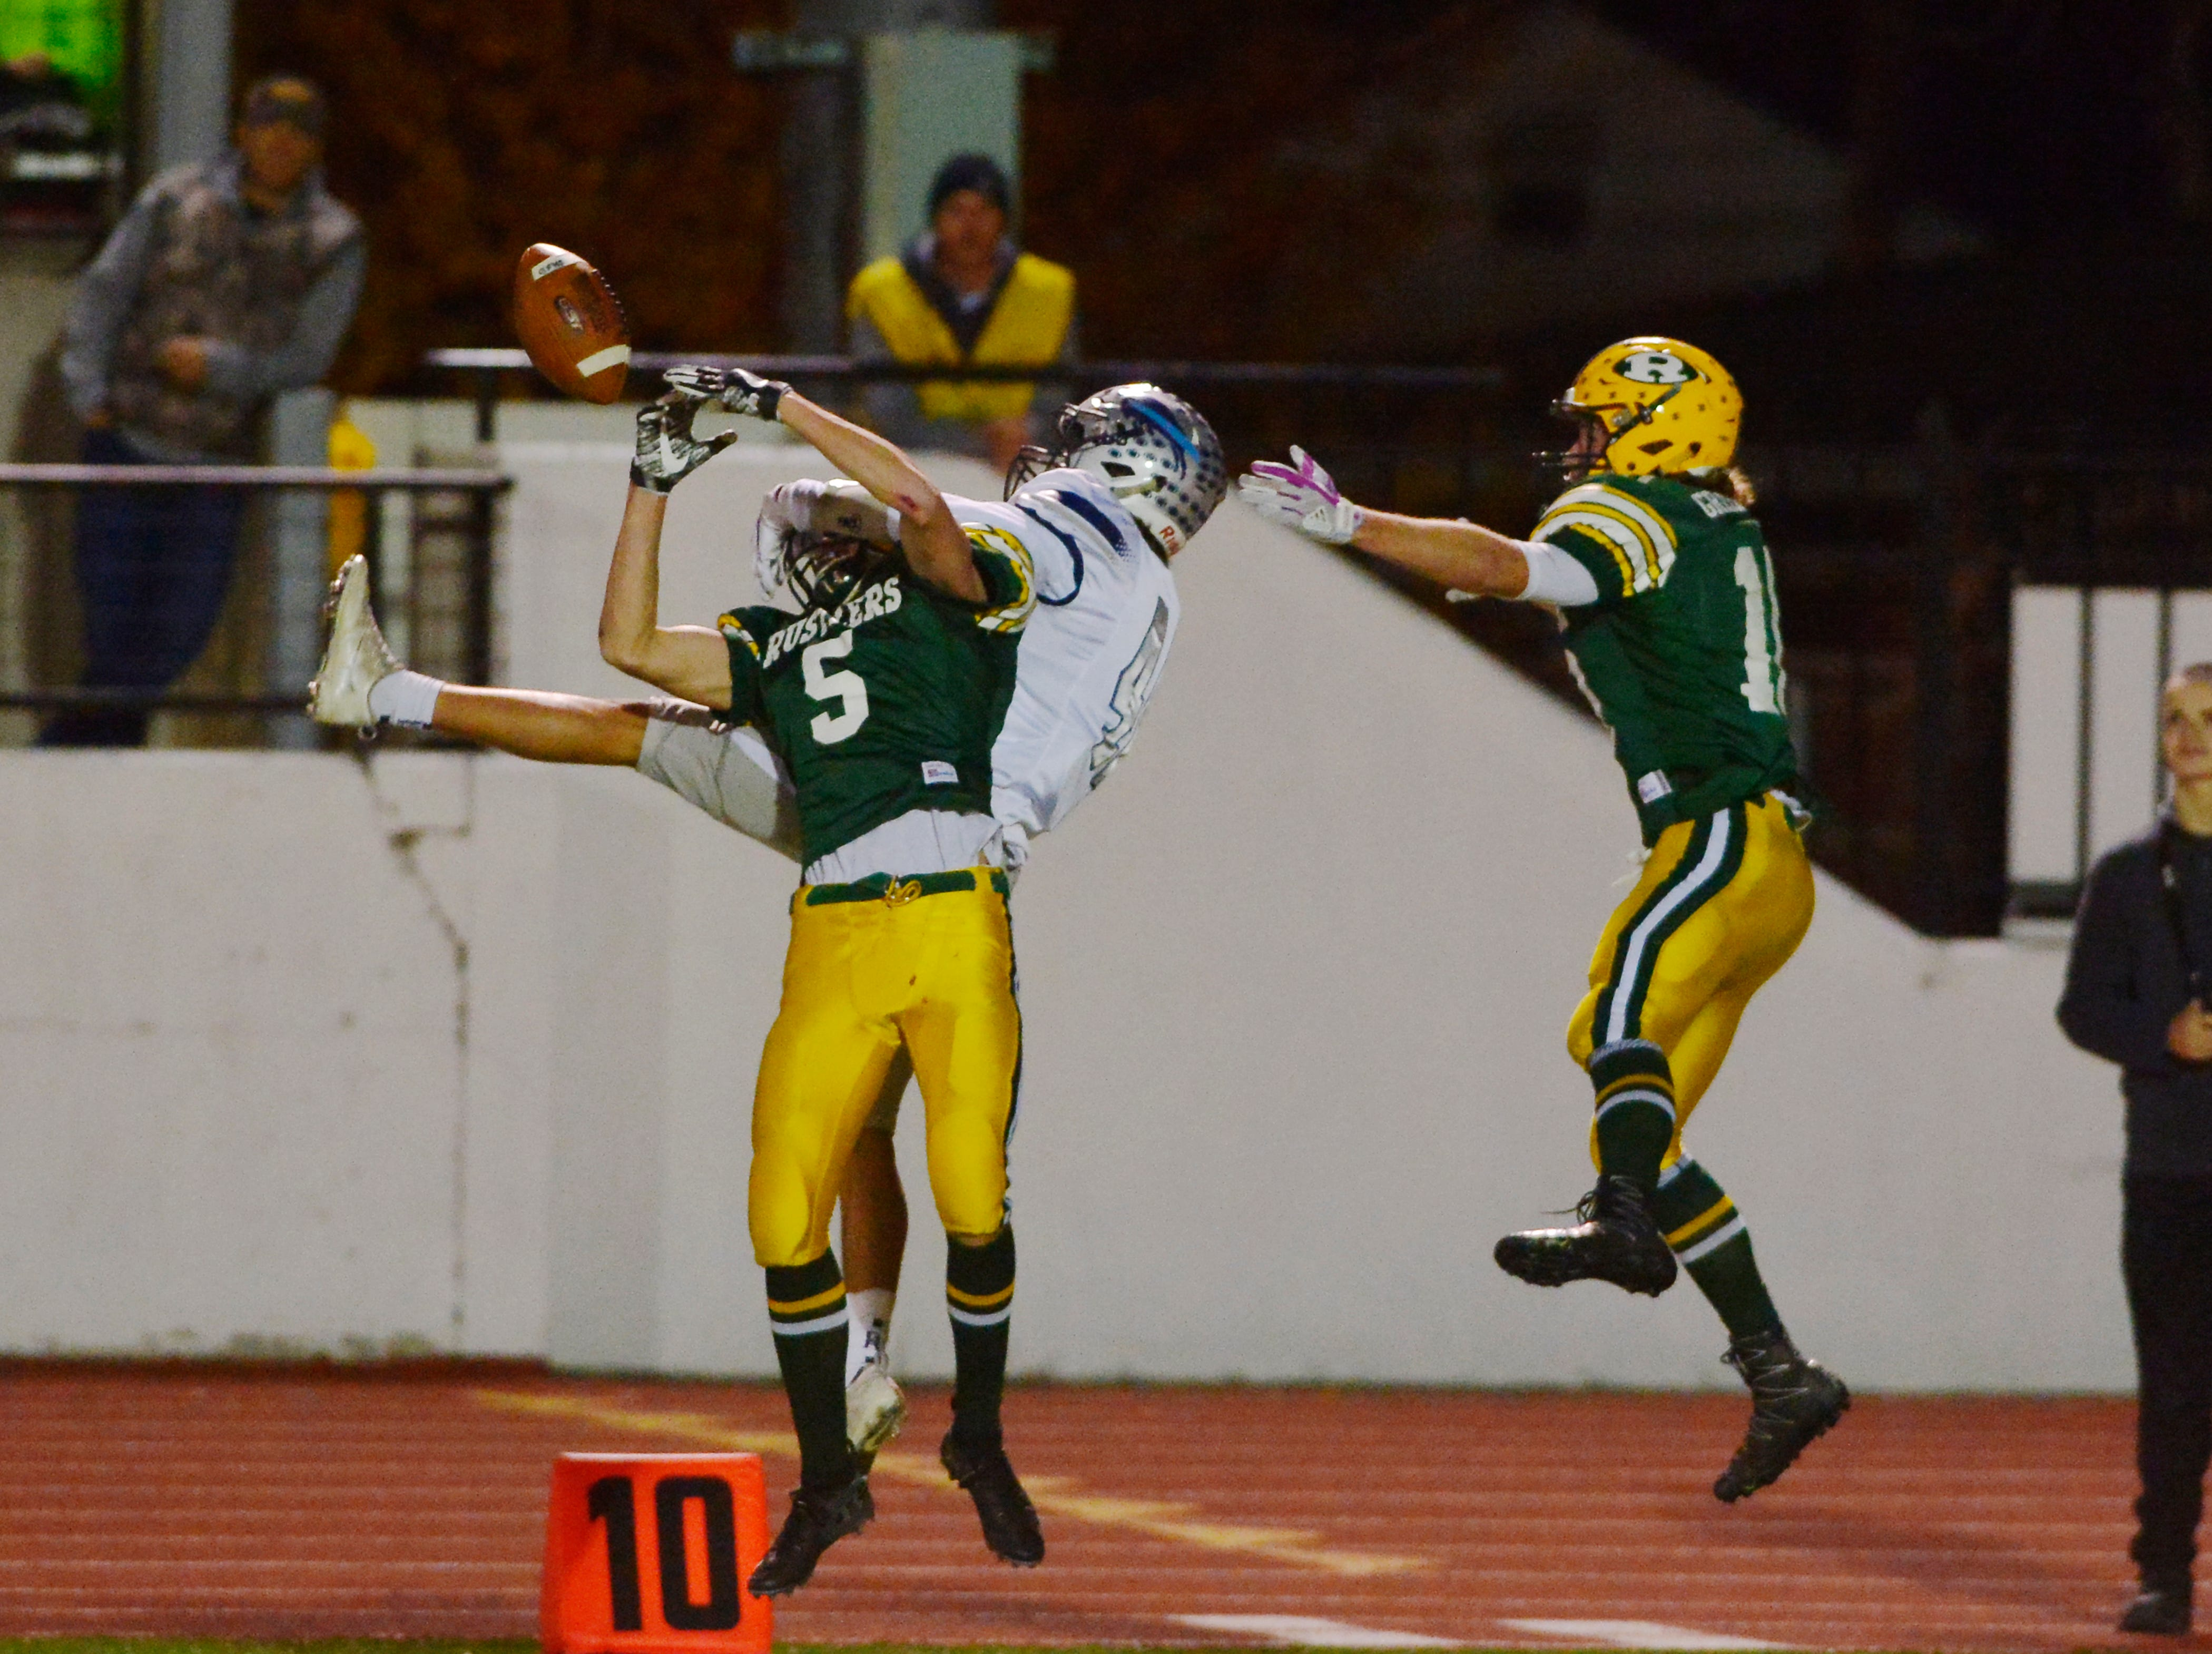 CMR's Kaden Gardner breaks up a pass intended for Kyle Torgerson during the crosstown football game between Great Falls High and CMR on Friday night at Memorial Stadium.